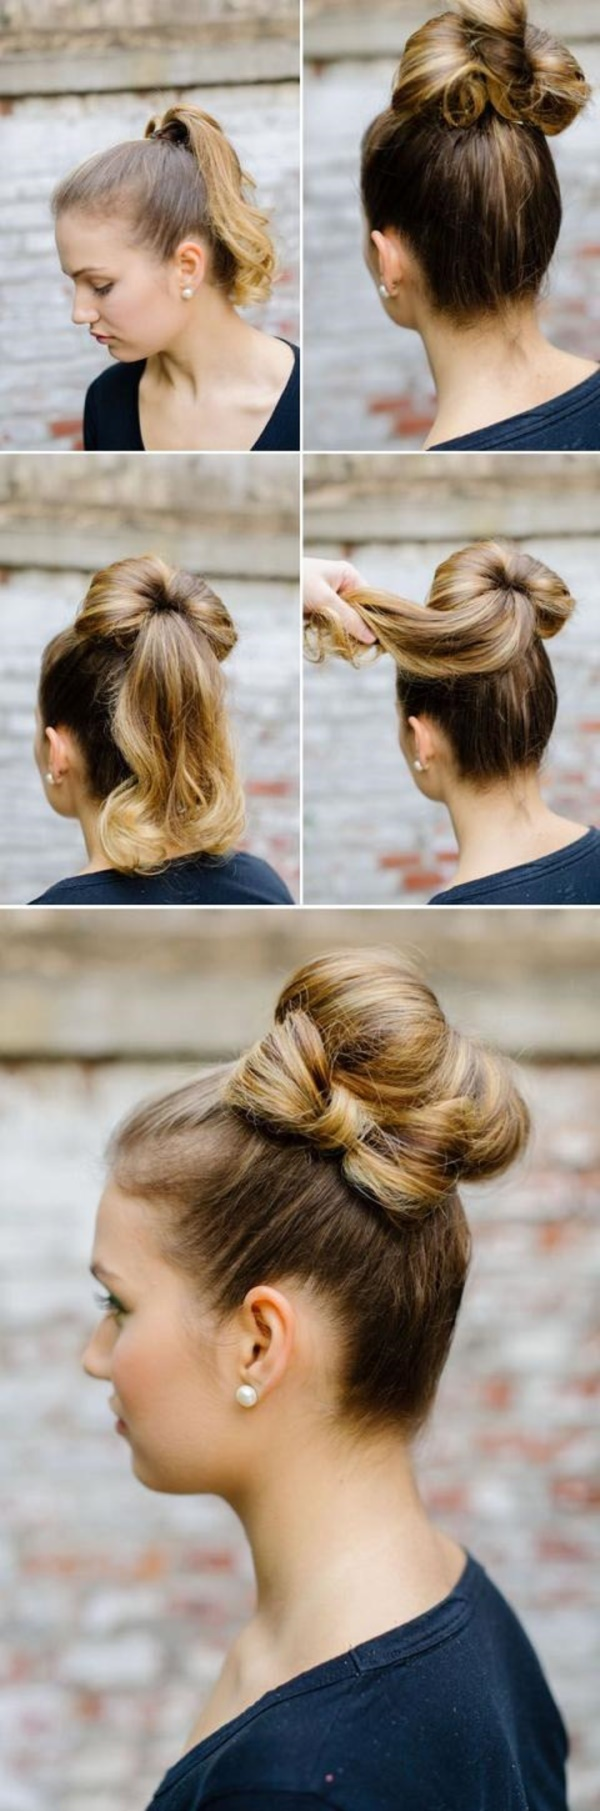 Strange 101 Easy Diy Hairstyles For Medium And Long Hair To Snatch Attention Short Hairstyles Gunalazisus